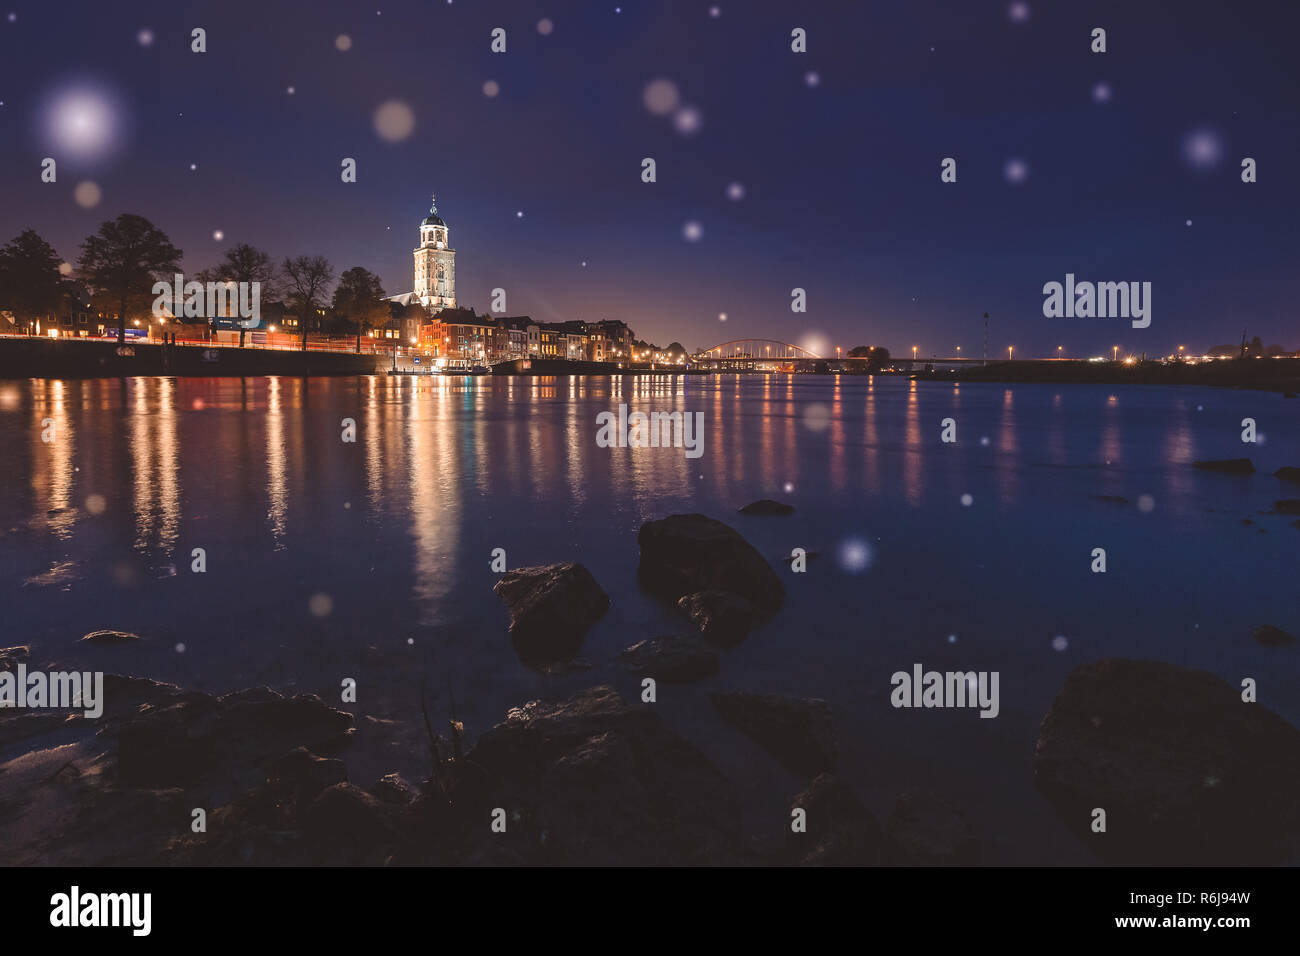 Deventer at night with view over the river Ijssel from a beach. The tower church is towered above the beautifully-featured cityscape. Stock Photo